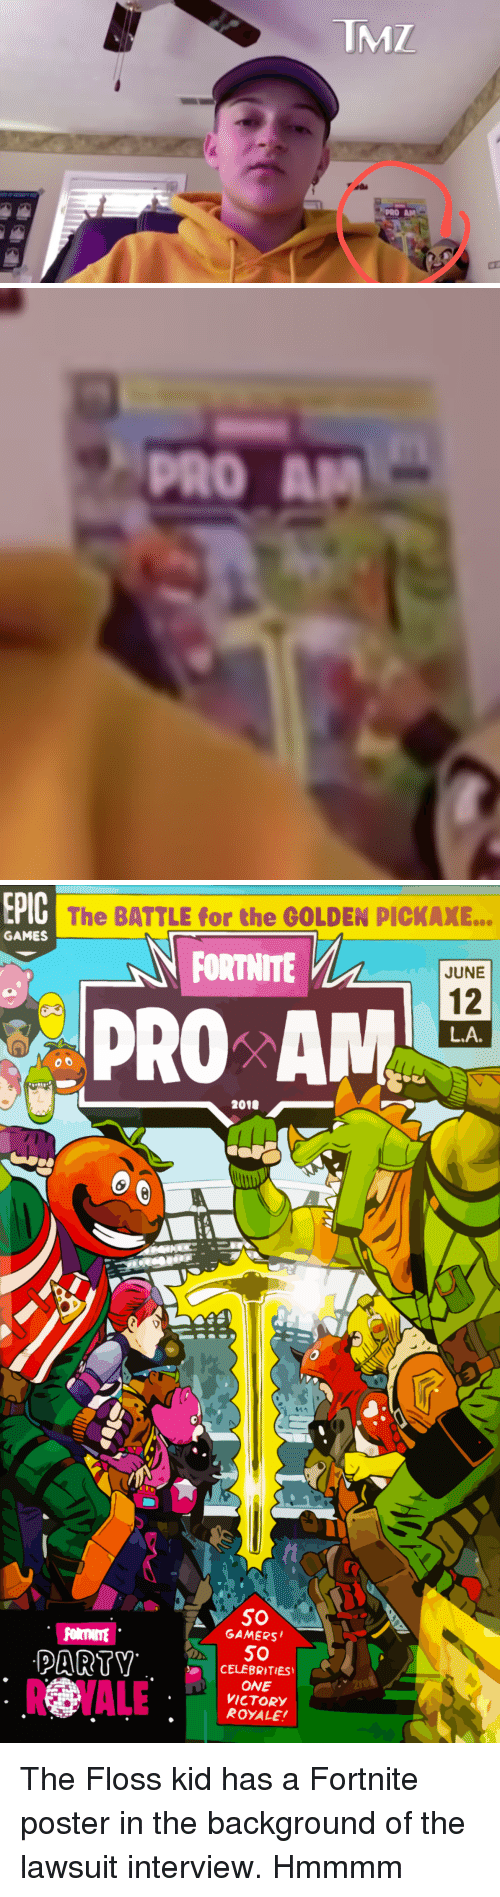 Parents, Games, and Pro: TMZ  PRO AM   PRO AM   PlO The BATTLE for the GOLDEN PICKAXE...  GAMES  FORTNITE  JUNE  12  L.A  PRO AN  2010  GAMERS  RYALEetop  5O  CELEBRITIES  ONE  VICTORY  ROYALE The Floss kid has a Fortnite poster in the background of the lawsuit interview. Hmmmm